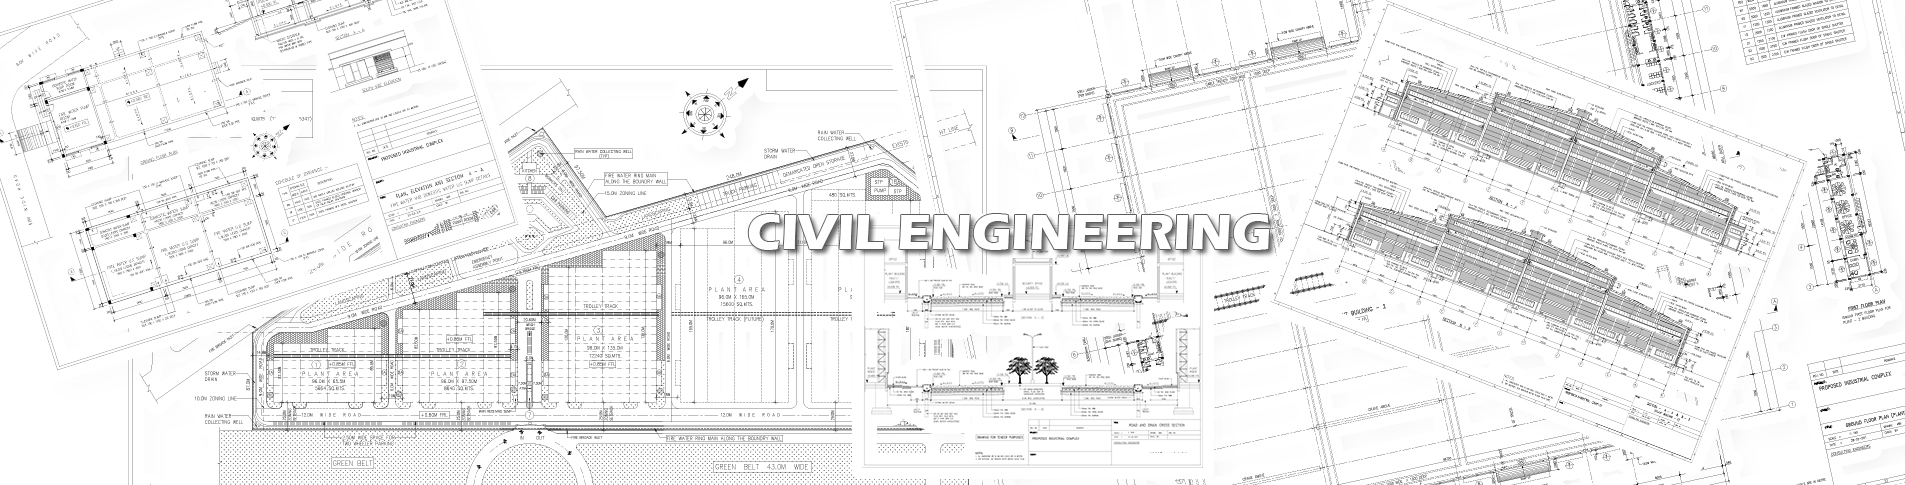 Home Shimi Design Consulting Piping Layout Engineer Jobs Web Banner 005